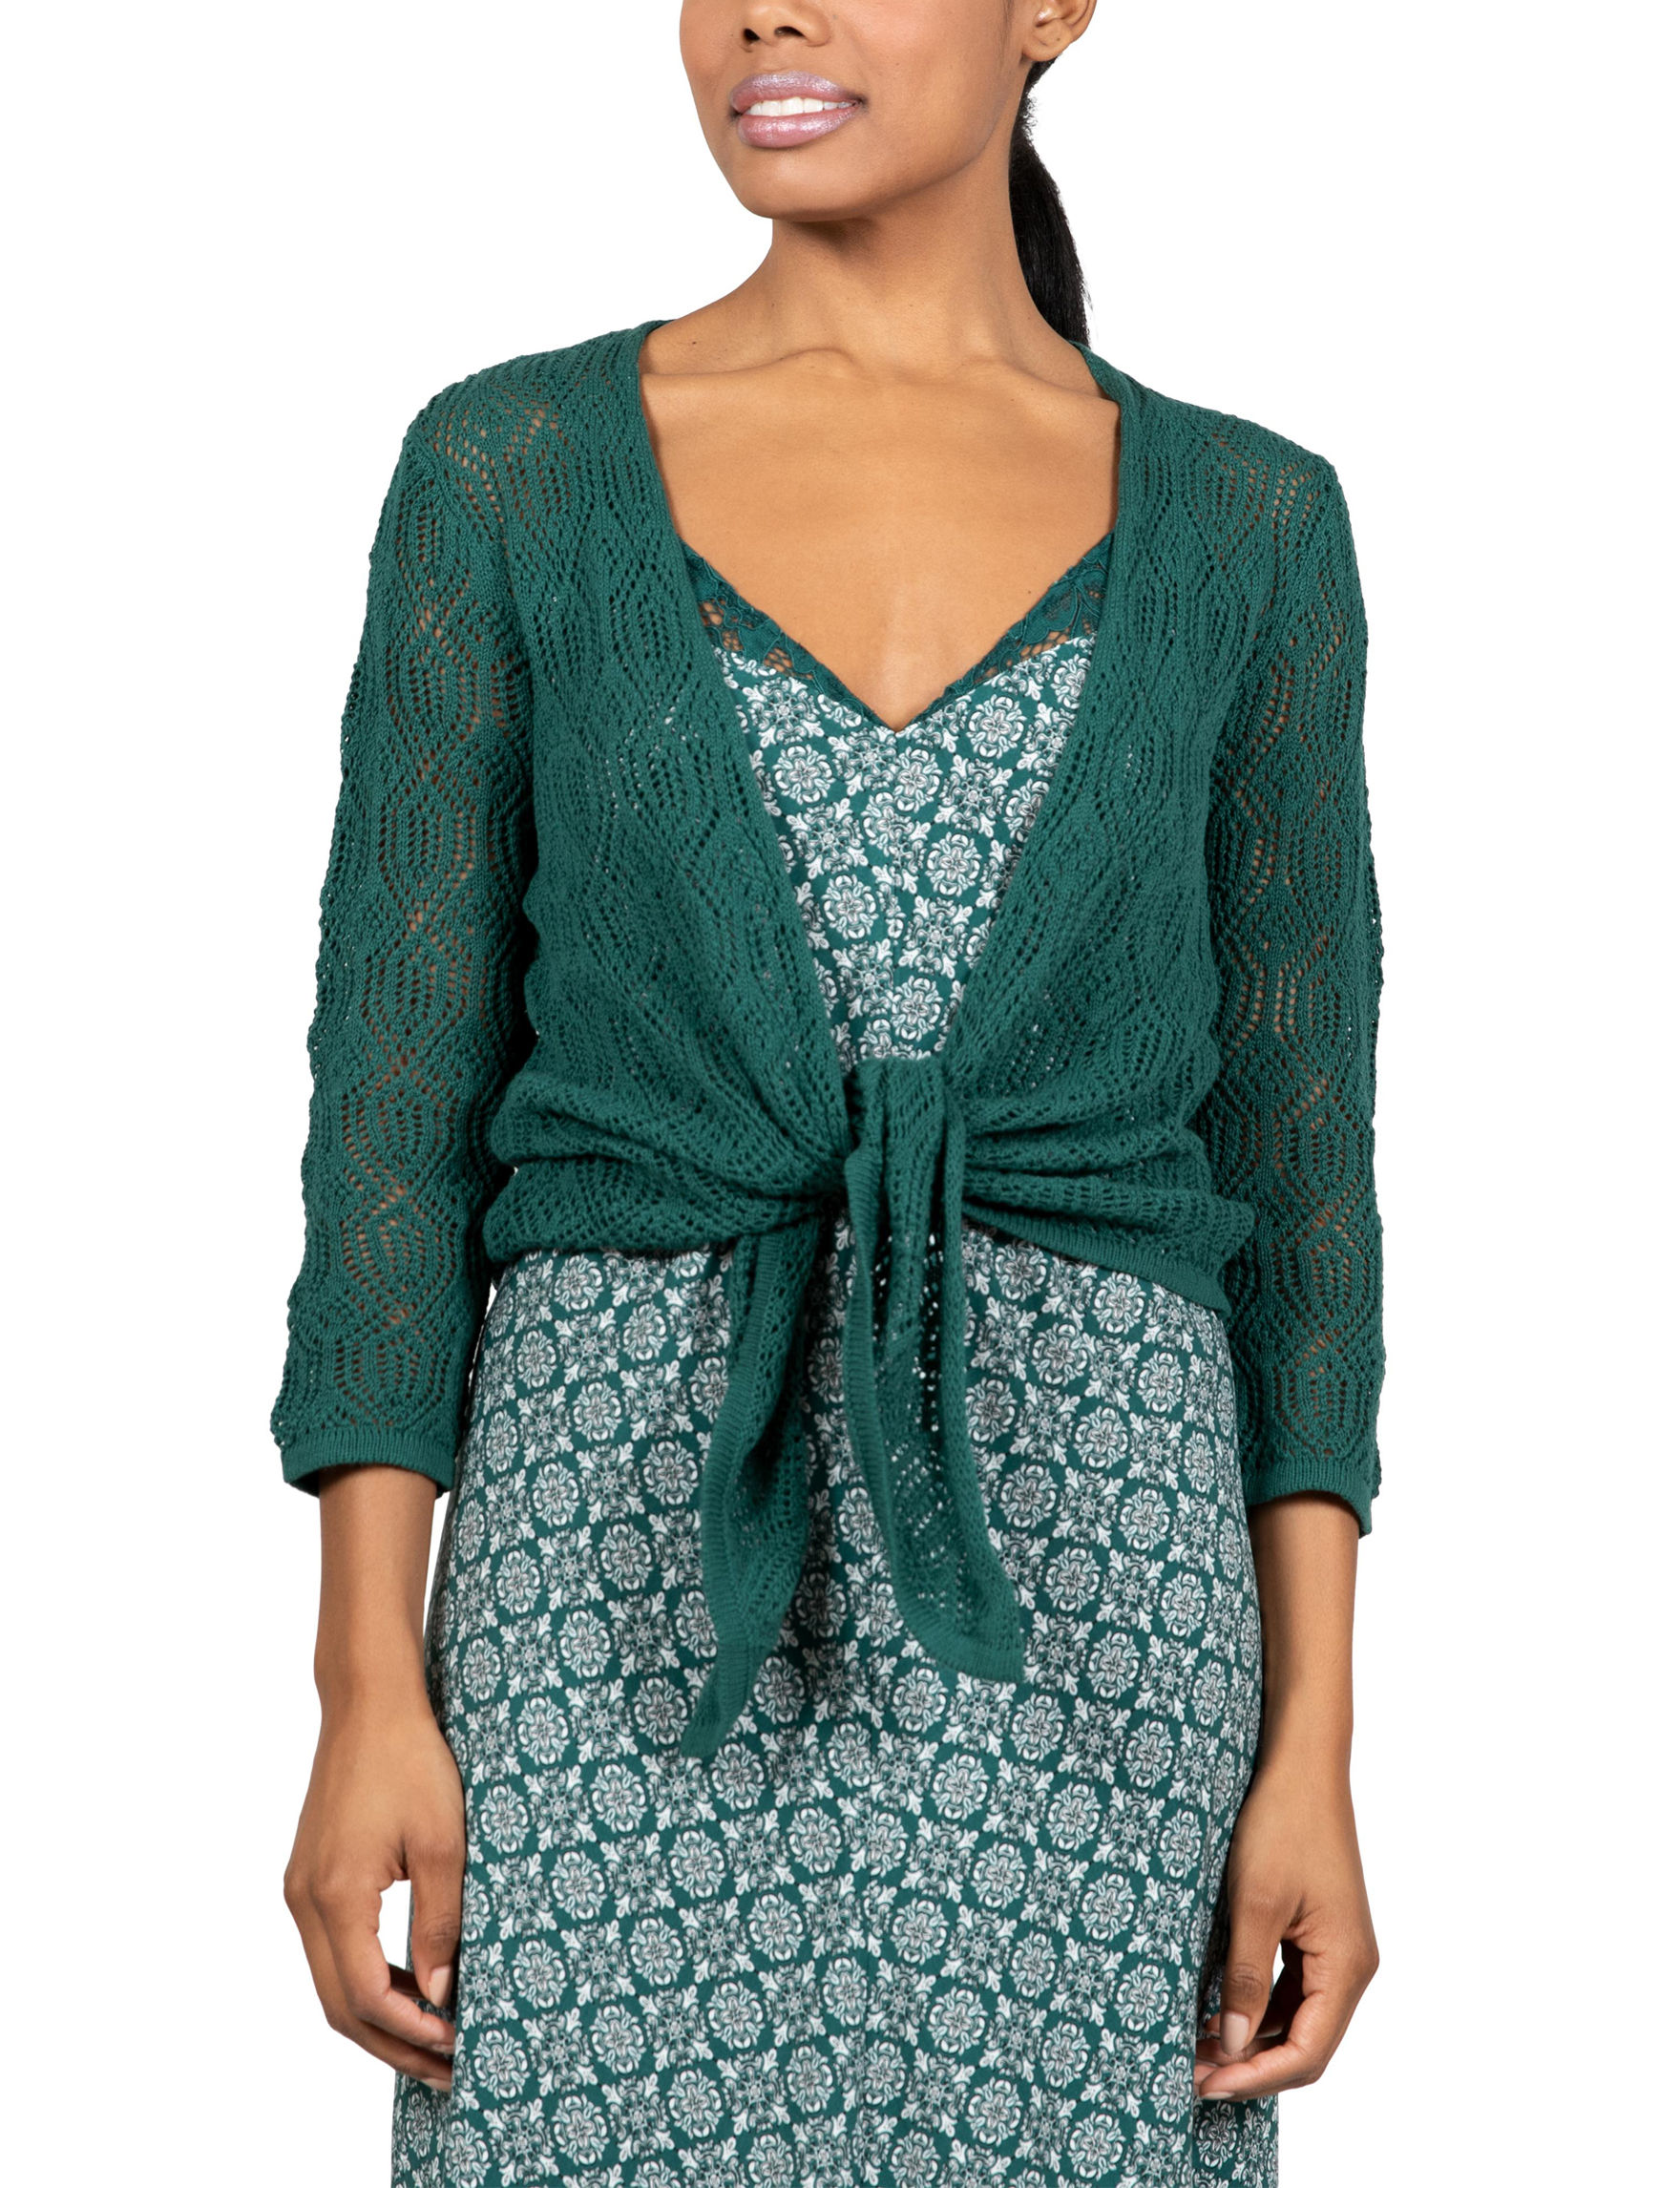 Skyes The Limit Green Cardigans